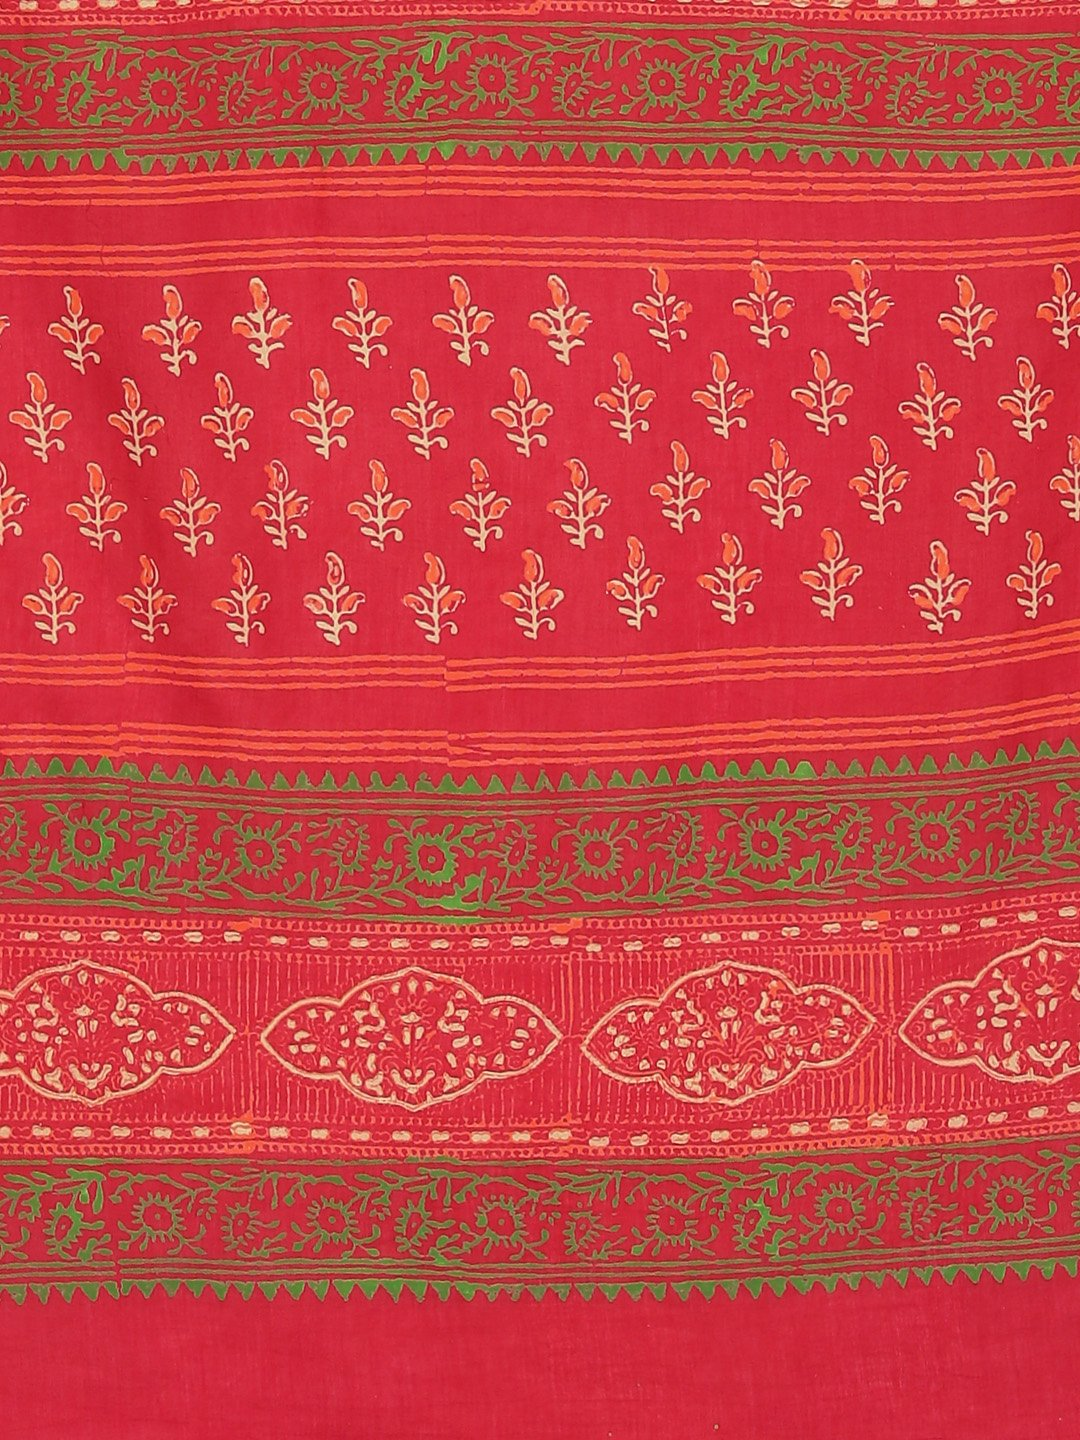 Red Beige Pure Handloom Dabu Handblock Print Bagru Saree-Saree-Kalakari India-BHKPSA0095-Cotton, Dabu, Geographical Indication, Hand Blocks, Hand Crafted, Heritage Prints, Indigo, Natural Dyes, Sarees, Sustainable Fabrics-[Linen,Ethnic,wear,Fashionista,Handloom,Handicraft,Indigo,blockprint,block,print,Cotton,Chanderi,Blue, latest,classy,party,bollywood,trendy,summer,style,traditional,formal,elegant,unique,style,hand,block,print, dabu,booti,gift,present,glamorous,affordable,collectible,Sari,Saree